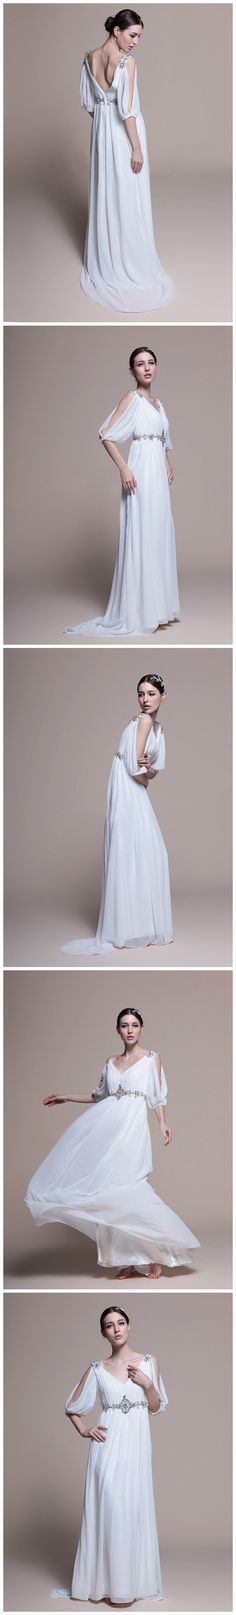 Love this! So flowy, and kind of reminds me of Princess Leia in a way...